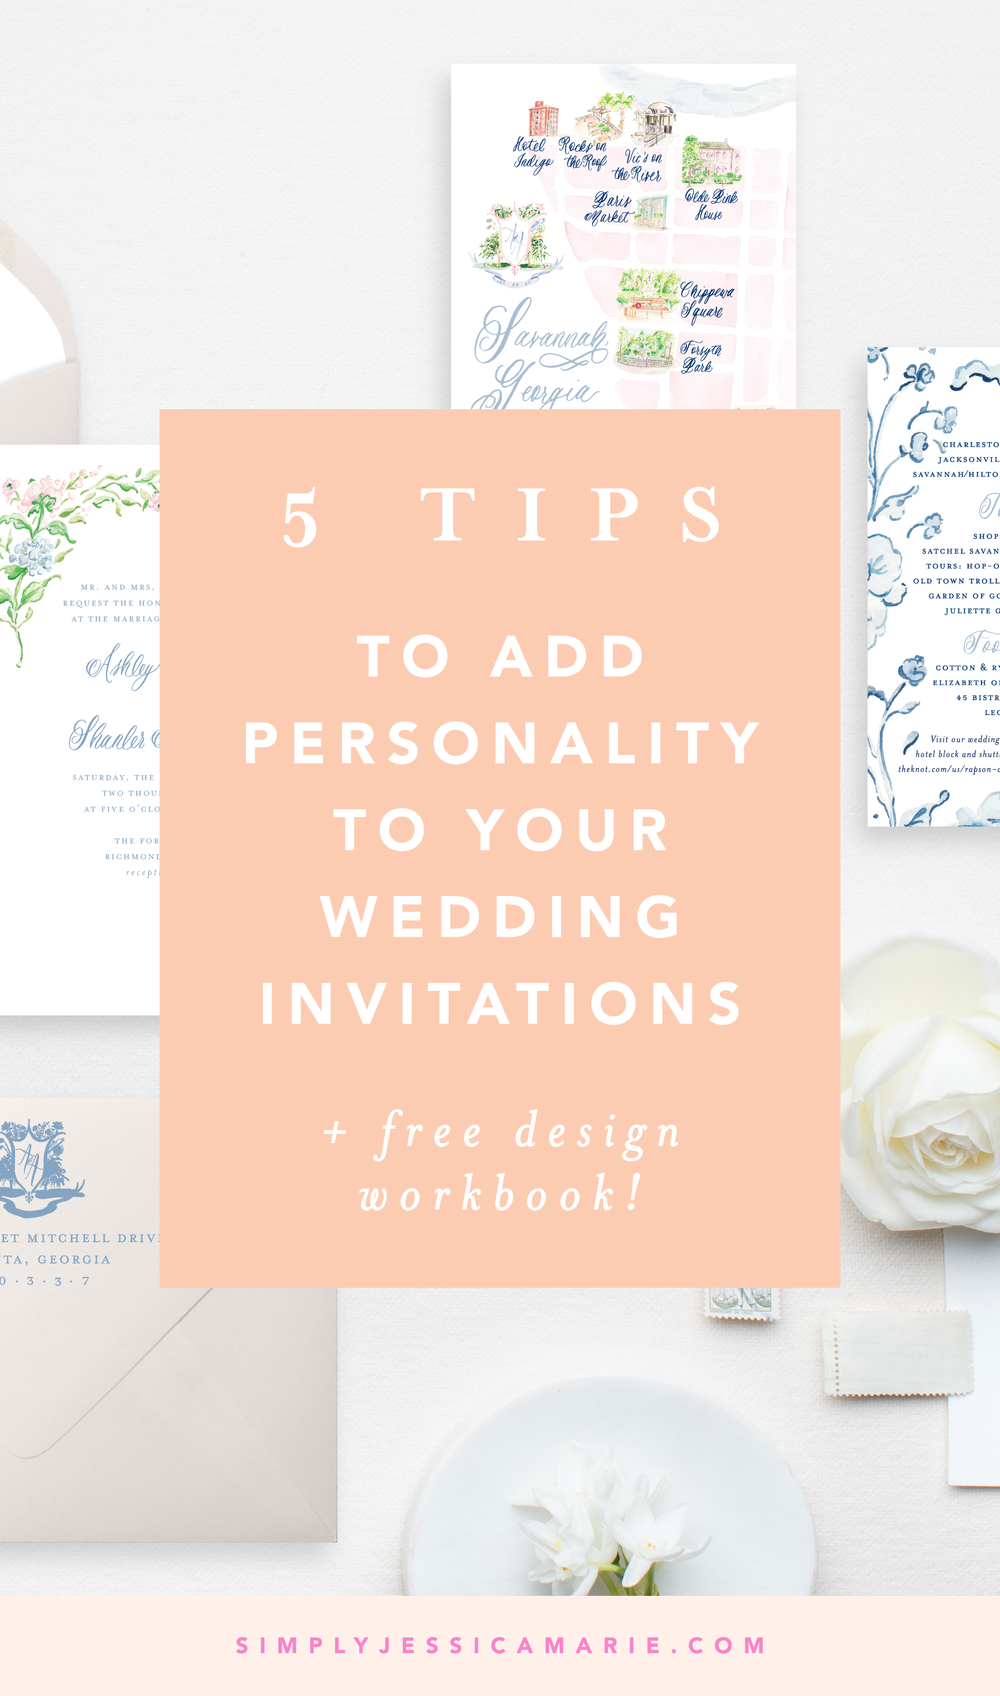 5 Tips to Add Personality to Your Wedding Invitations by Simply Jessica Marie